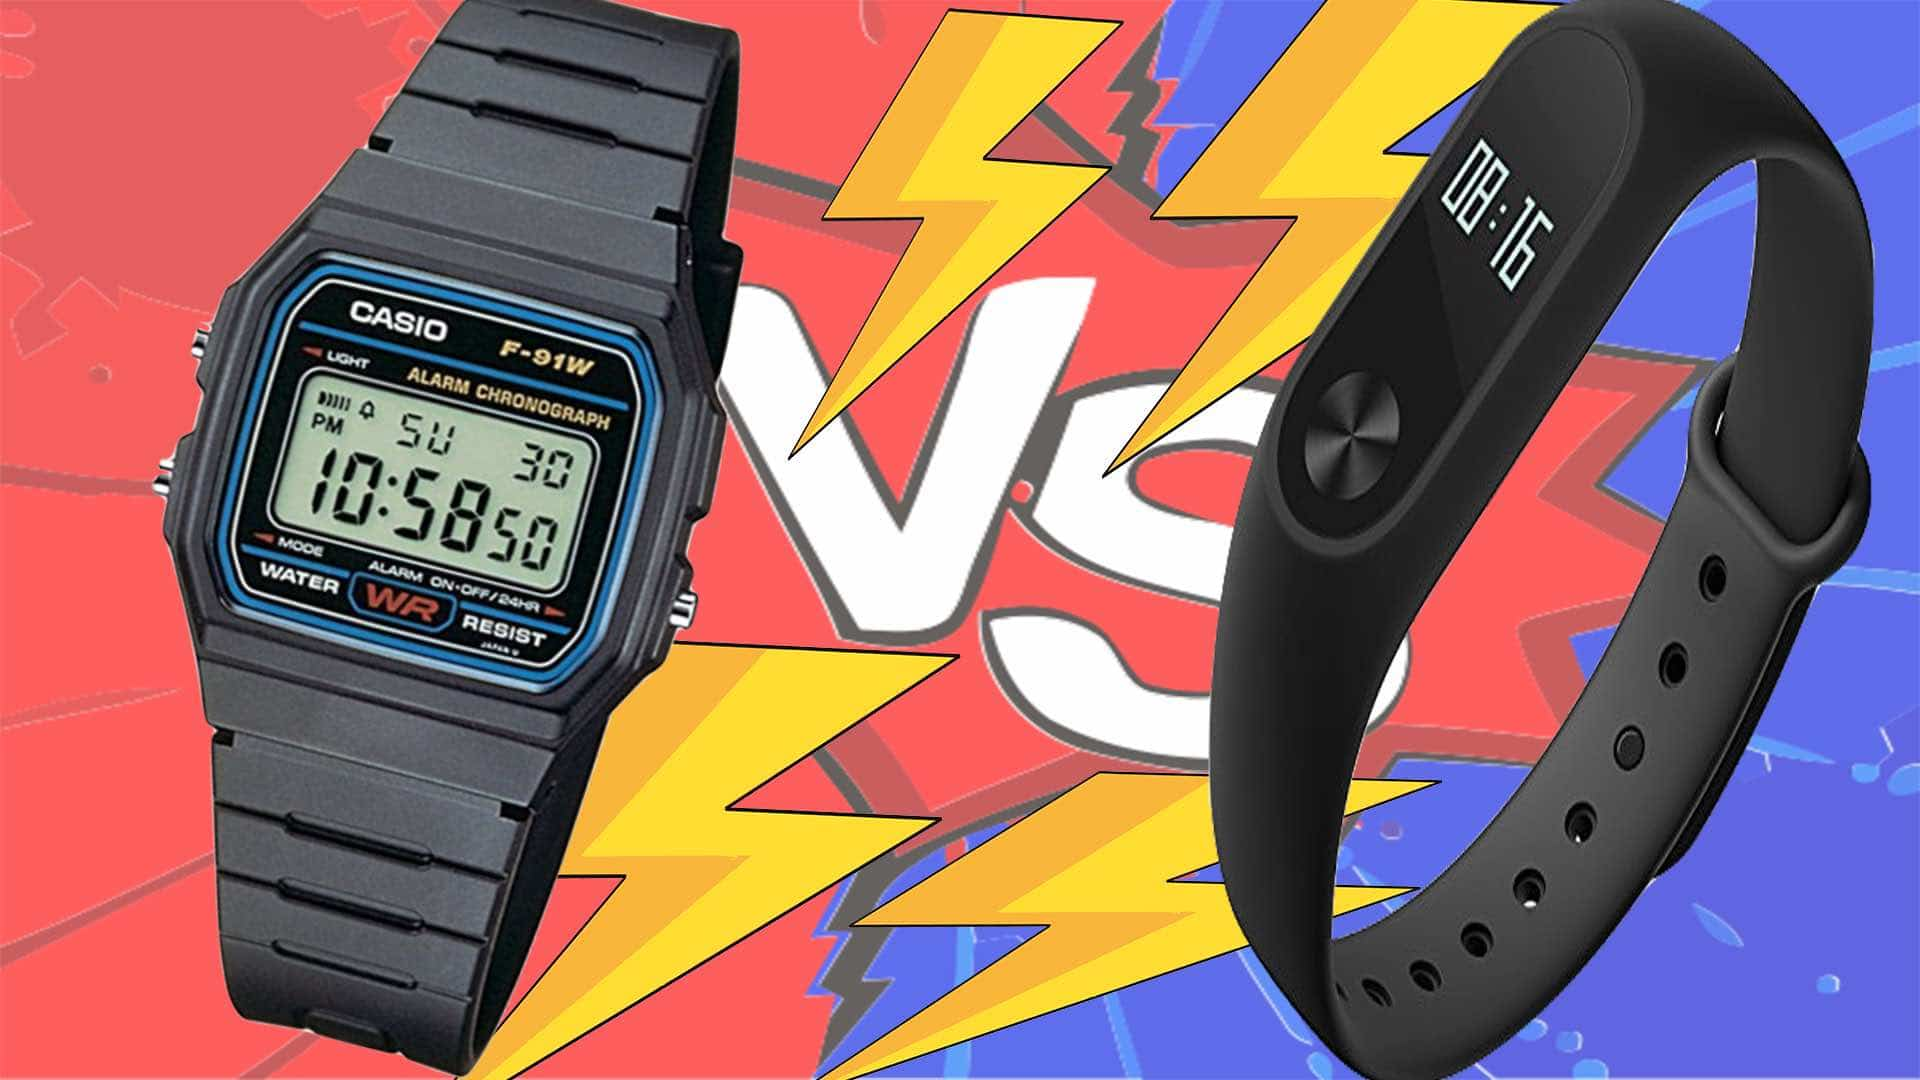 Reloj deportivo – Xiaomi Band 2 vs Casio F-91W